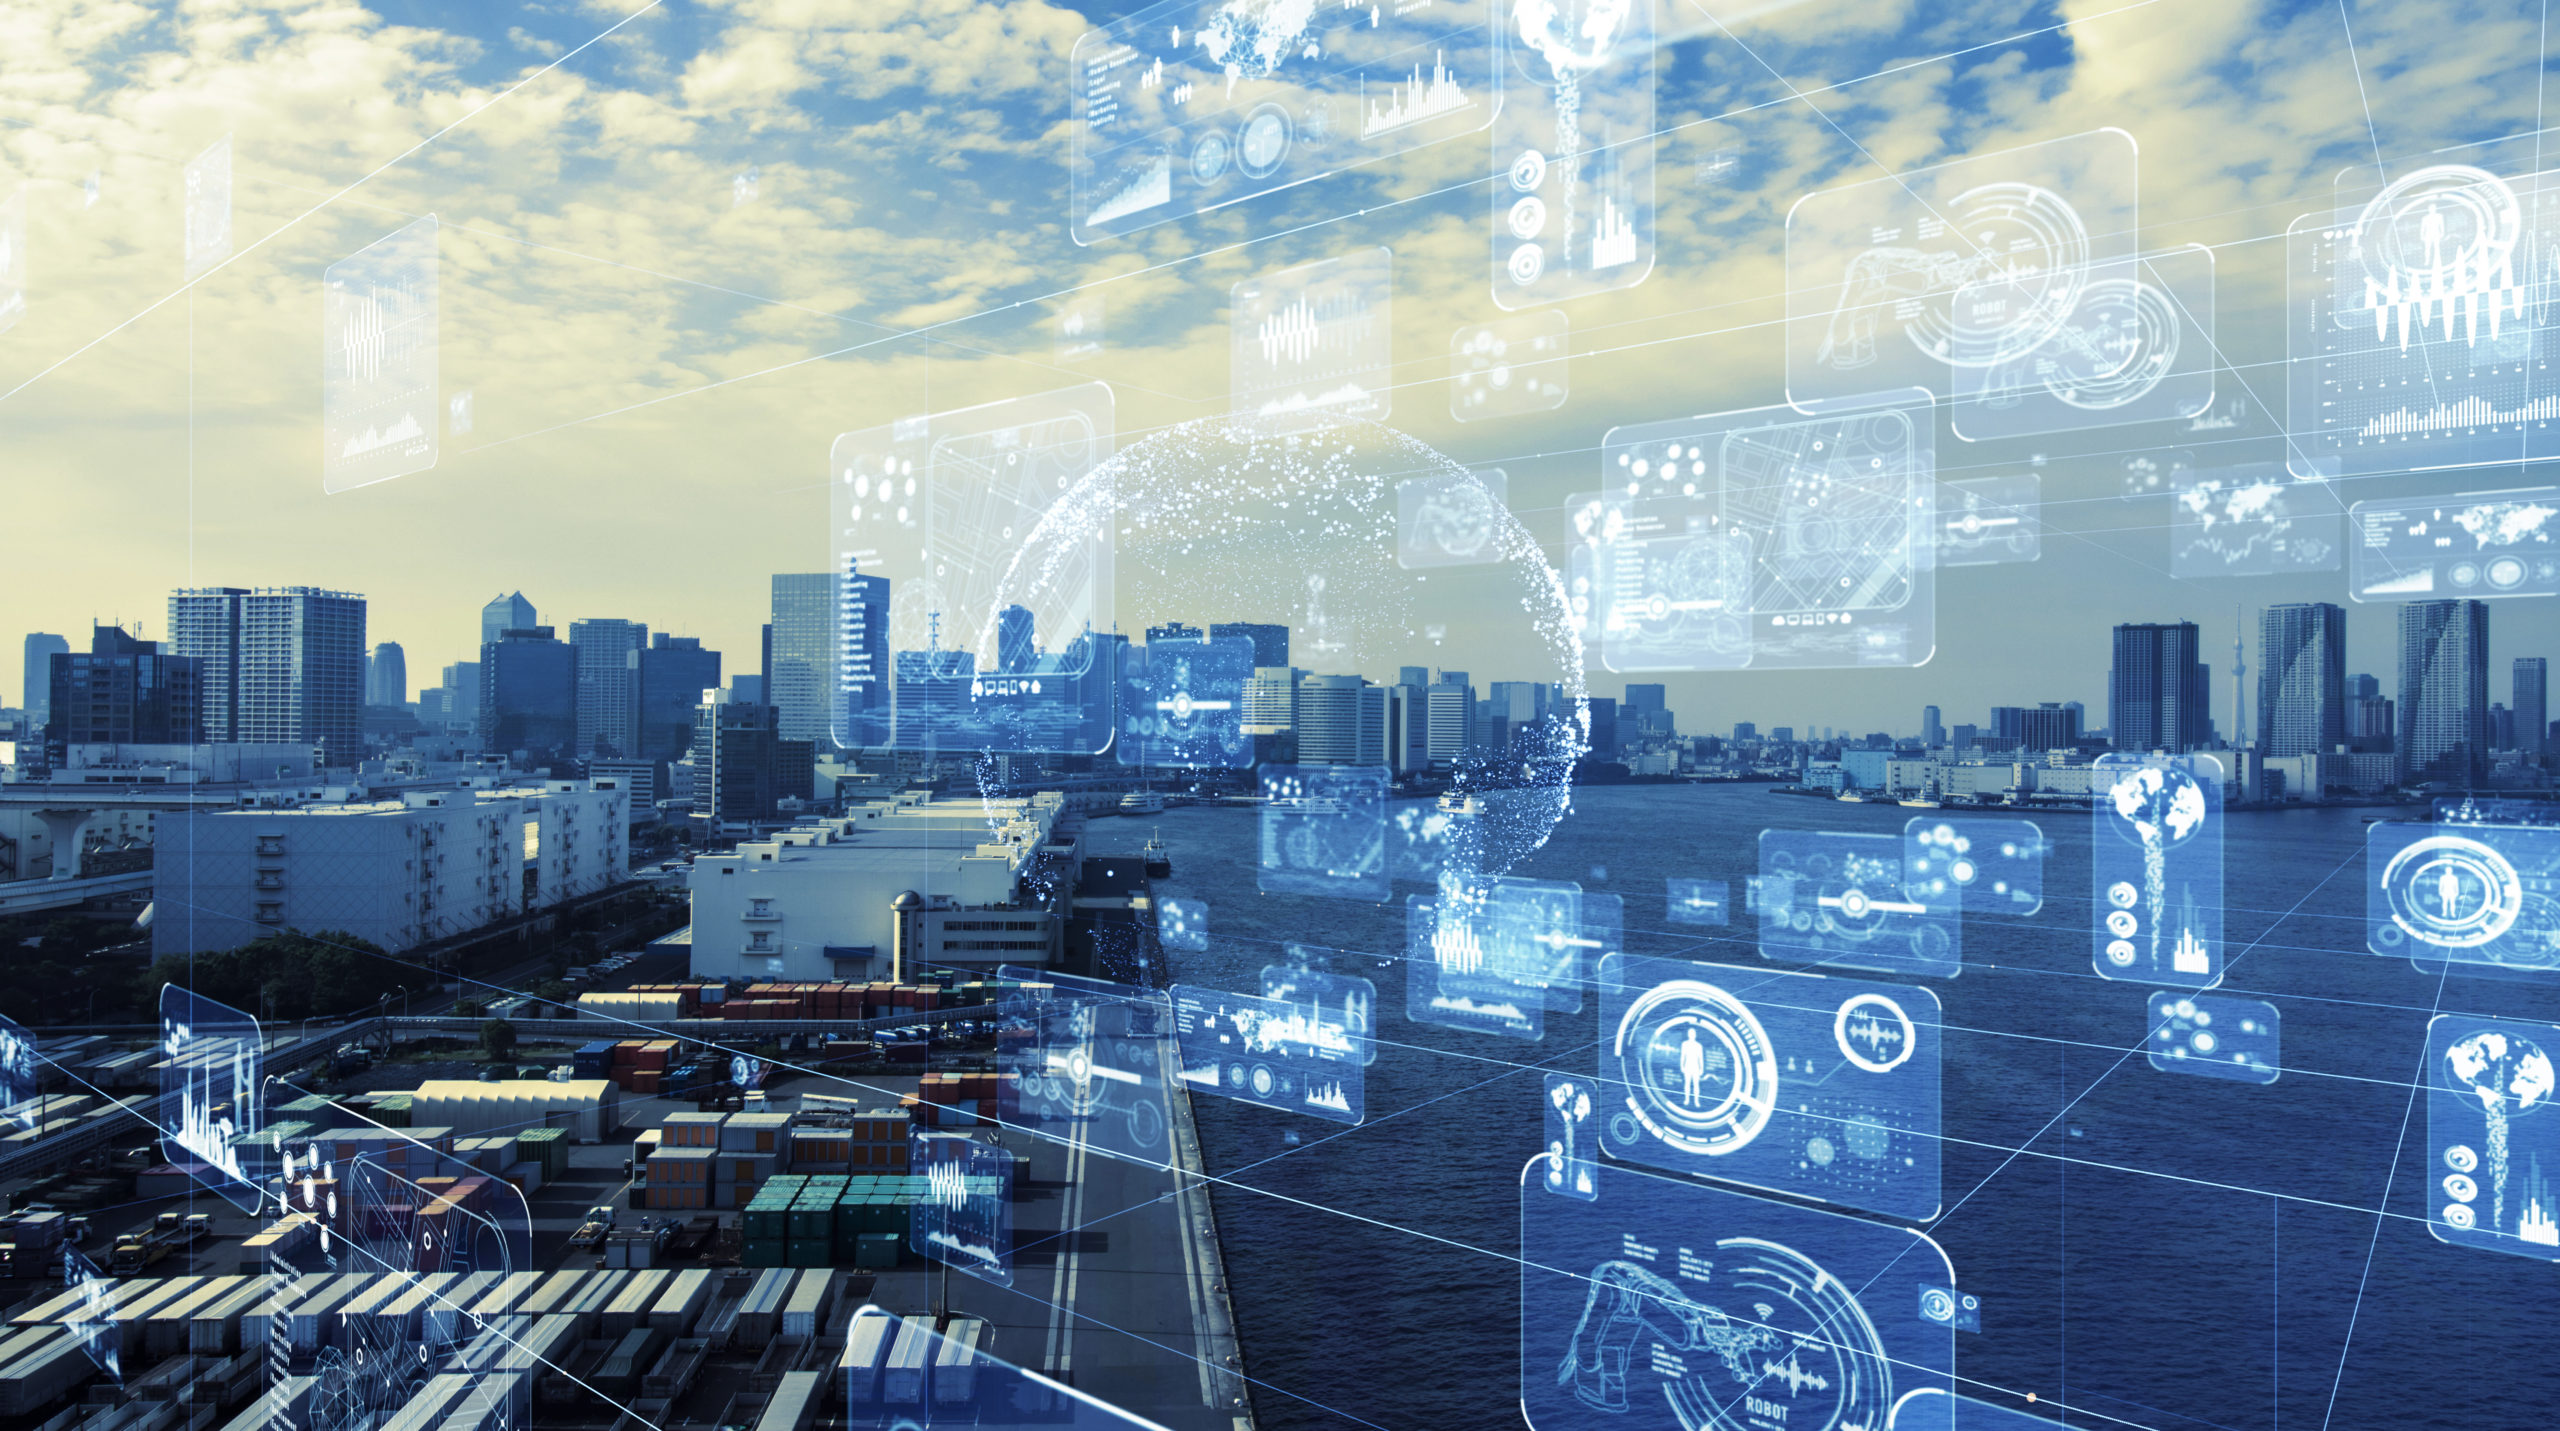 Improve the Performance of the Supply Chain Using Technology